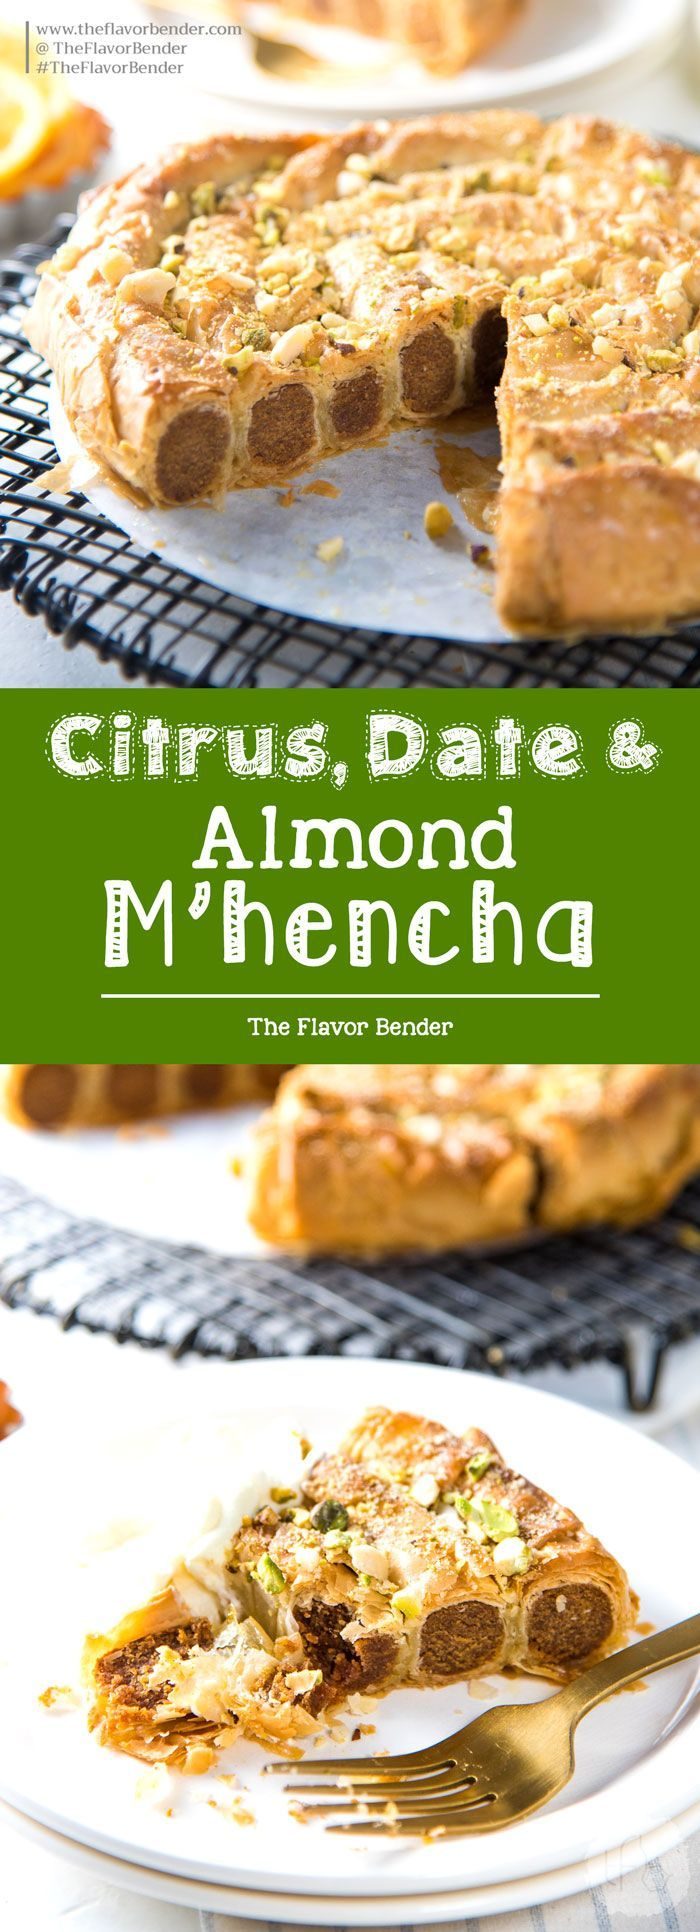 Citrus, Date and Almond M'hencha with Orange blossom honey syrup - A delicious and exotic Moroccan delicacy! A sweet date and almond paste wrapped in honey syrup soaked filo pastry.It tastes just as amazing as it looks! #FiloPastry #MoroccanDesserts #Mhencha  via @theflavorbender